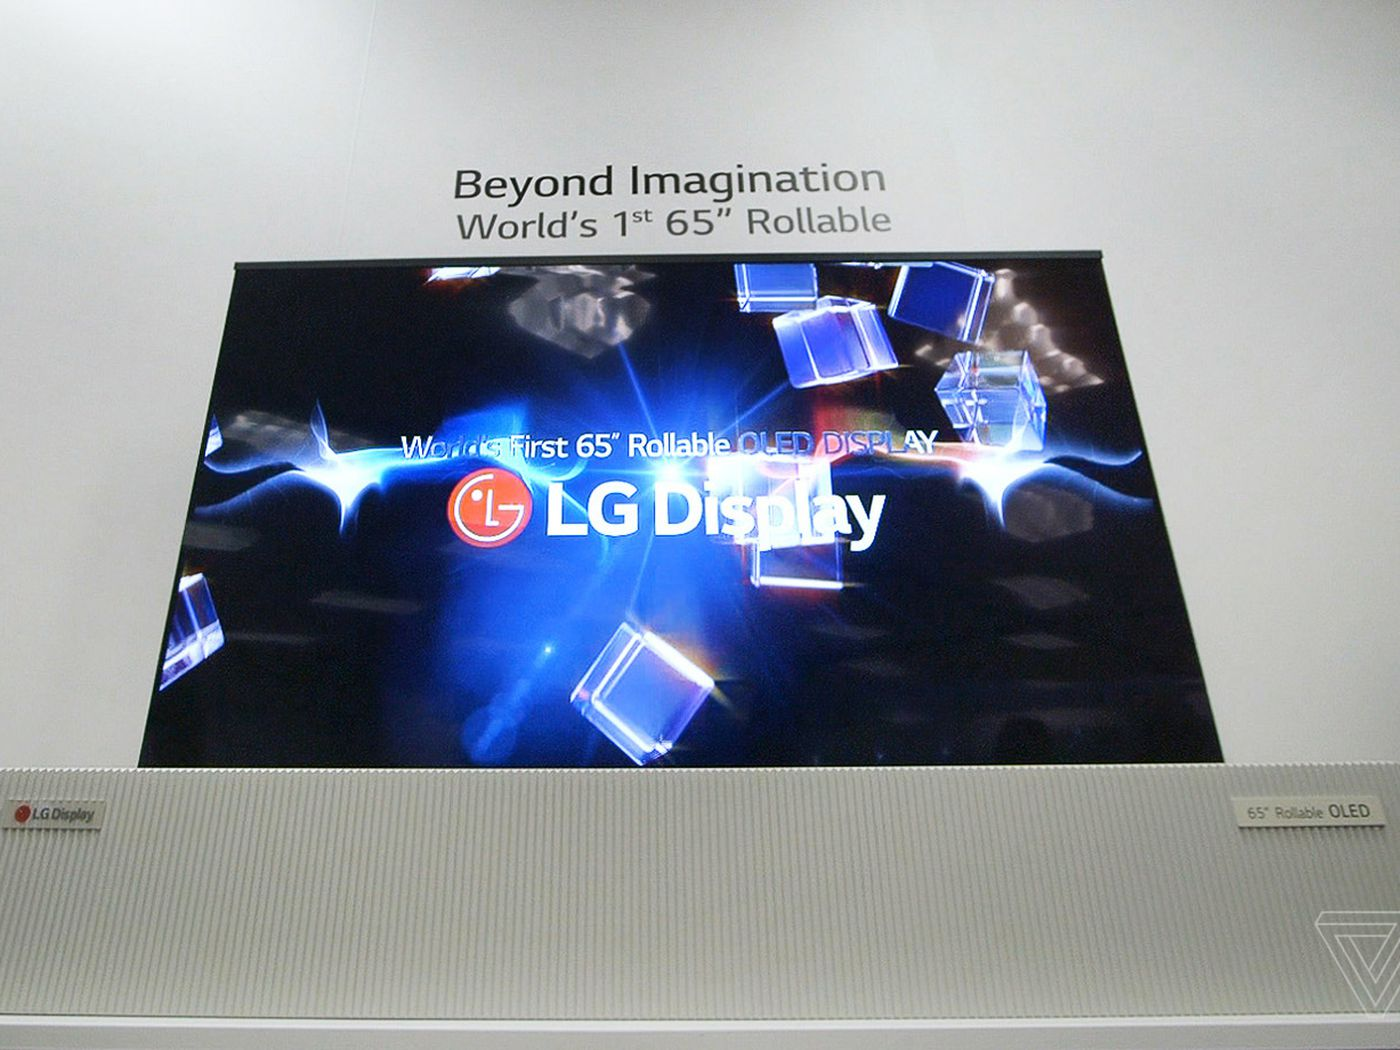 This 65-inch OLED TV rolls up like a giant newspaper - The Verge